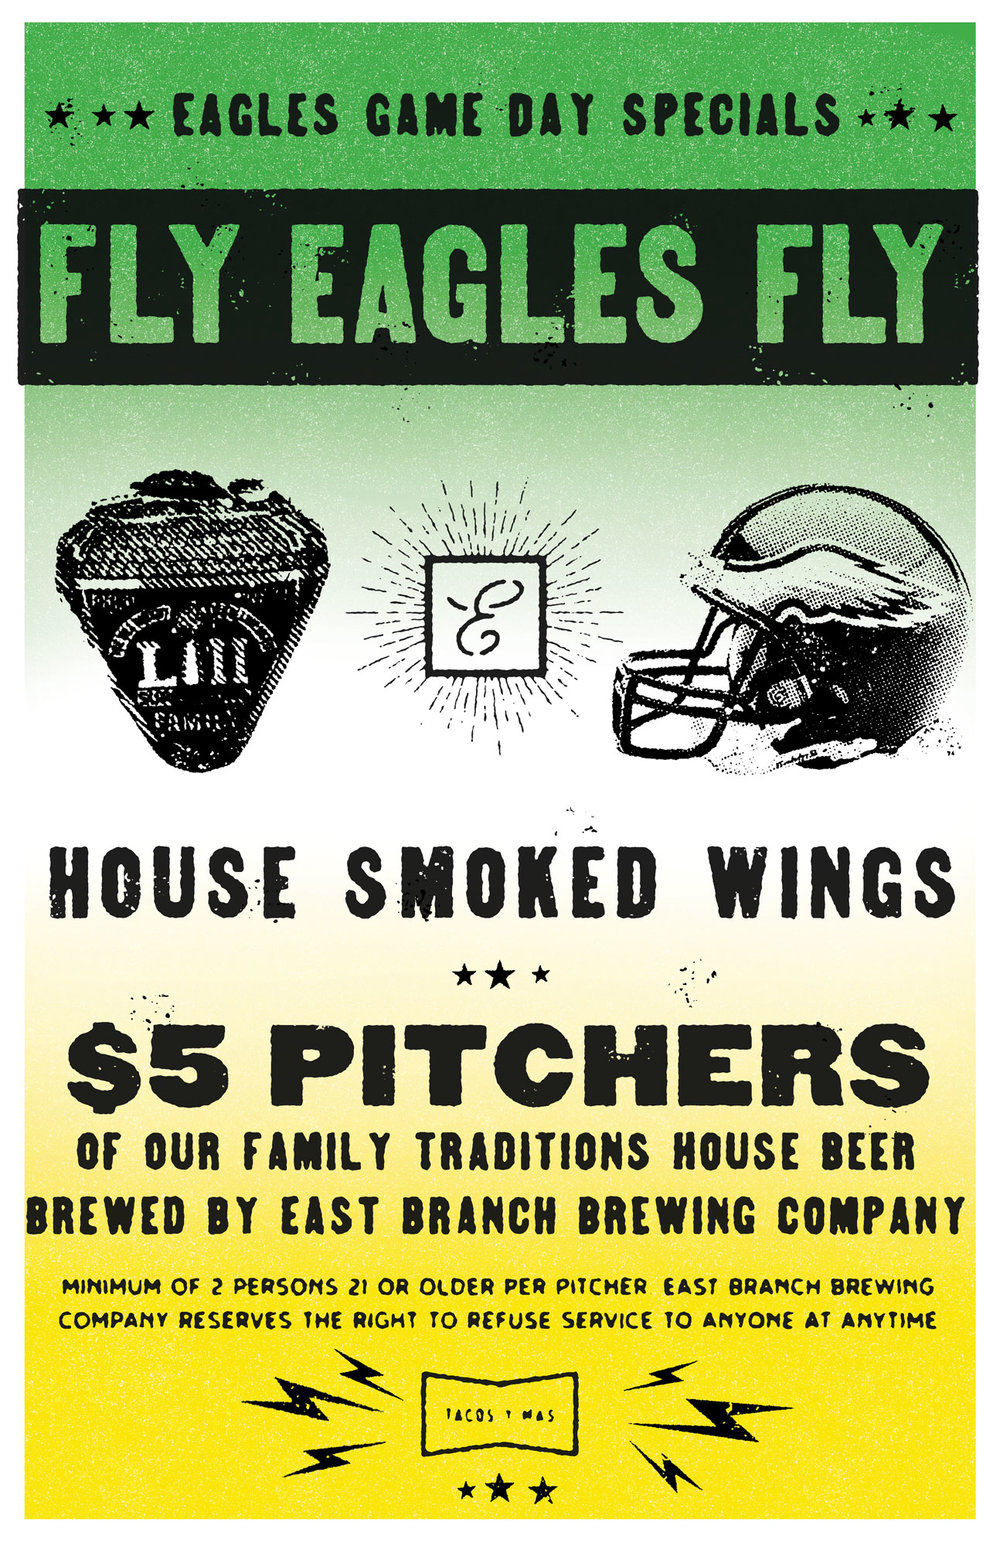 Join us every Eagles Game Day for $5 Beer Pitchers, House-Smokes Wings & More!